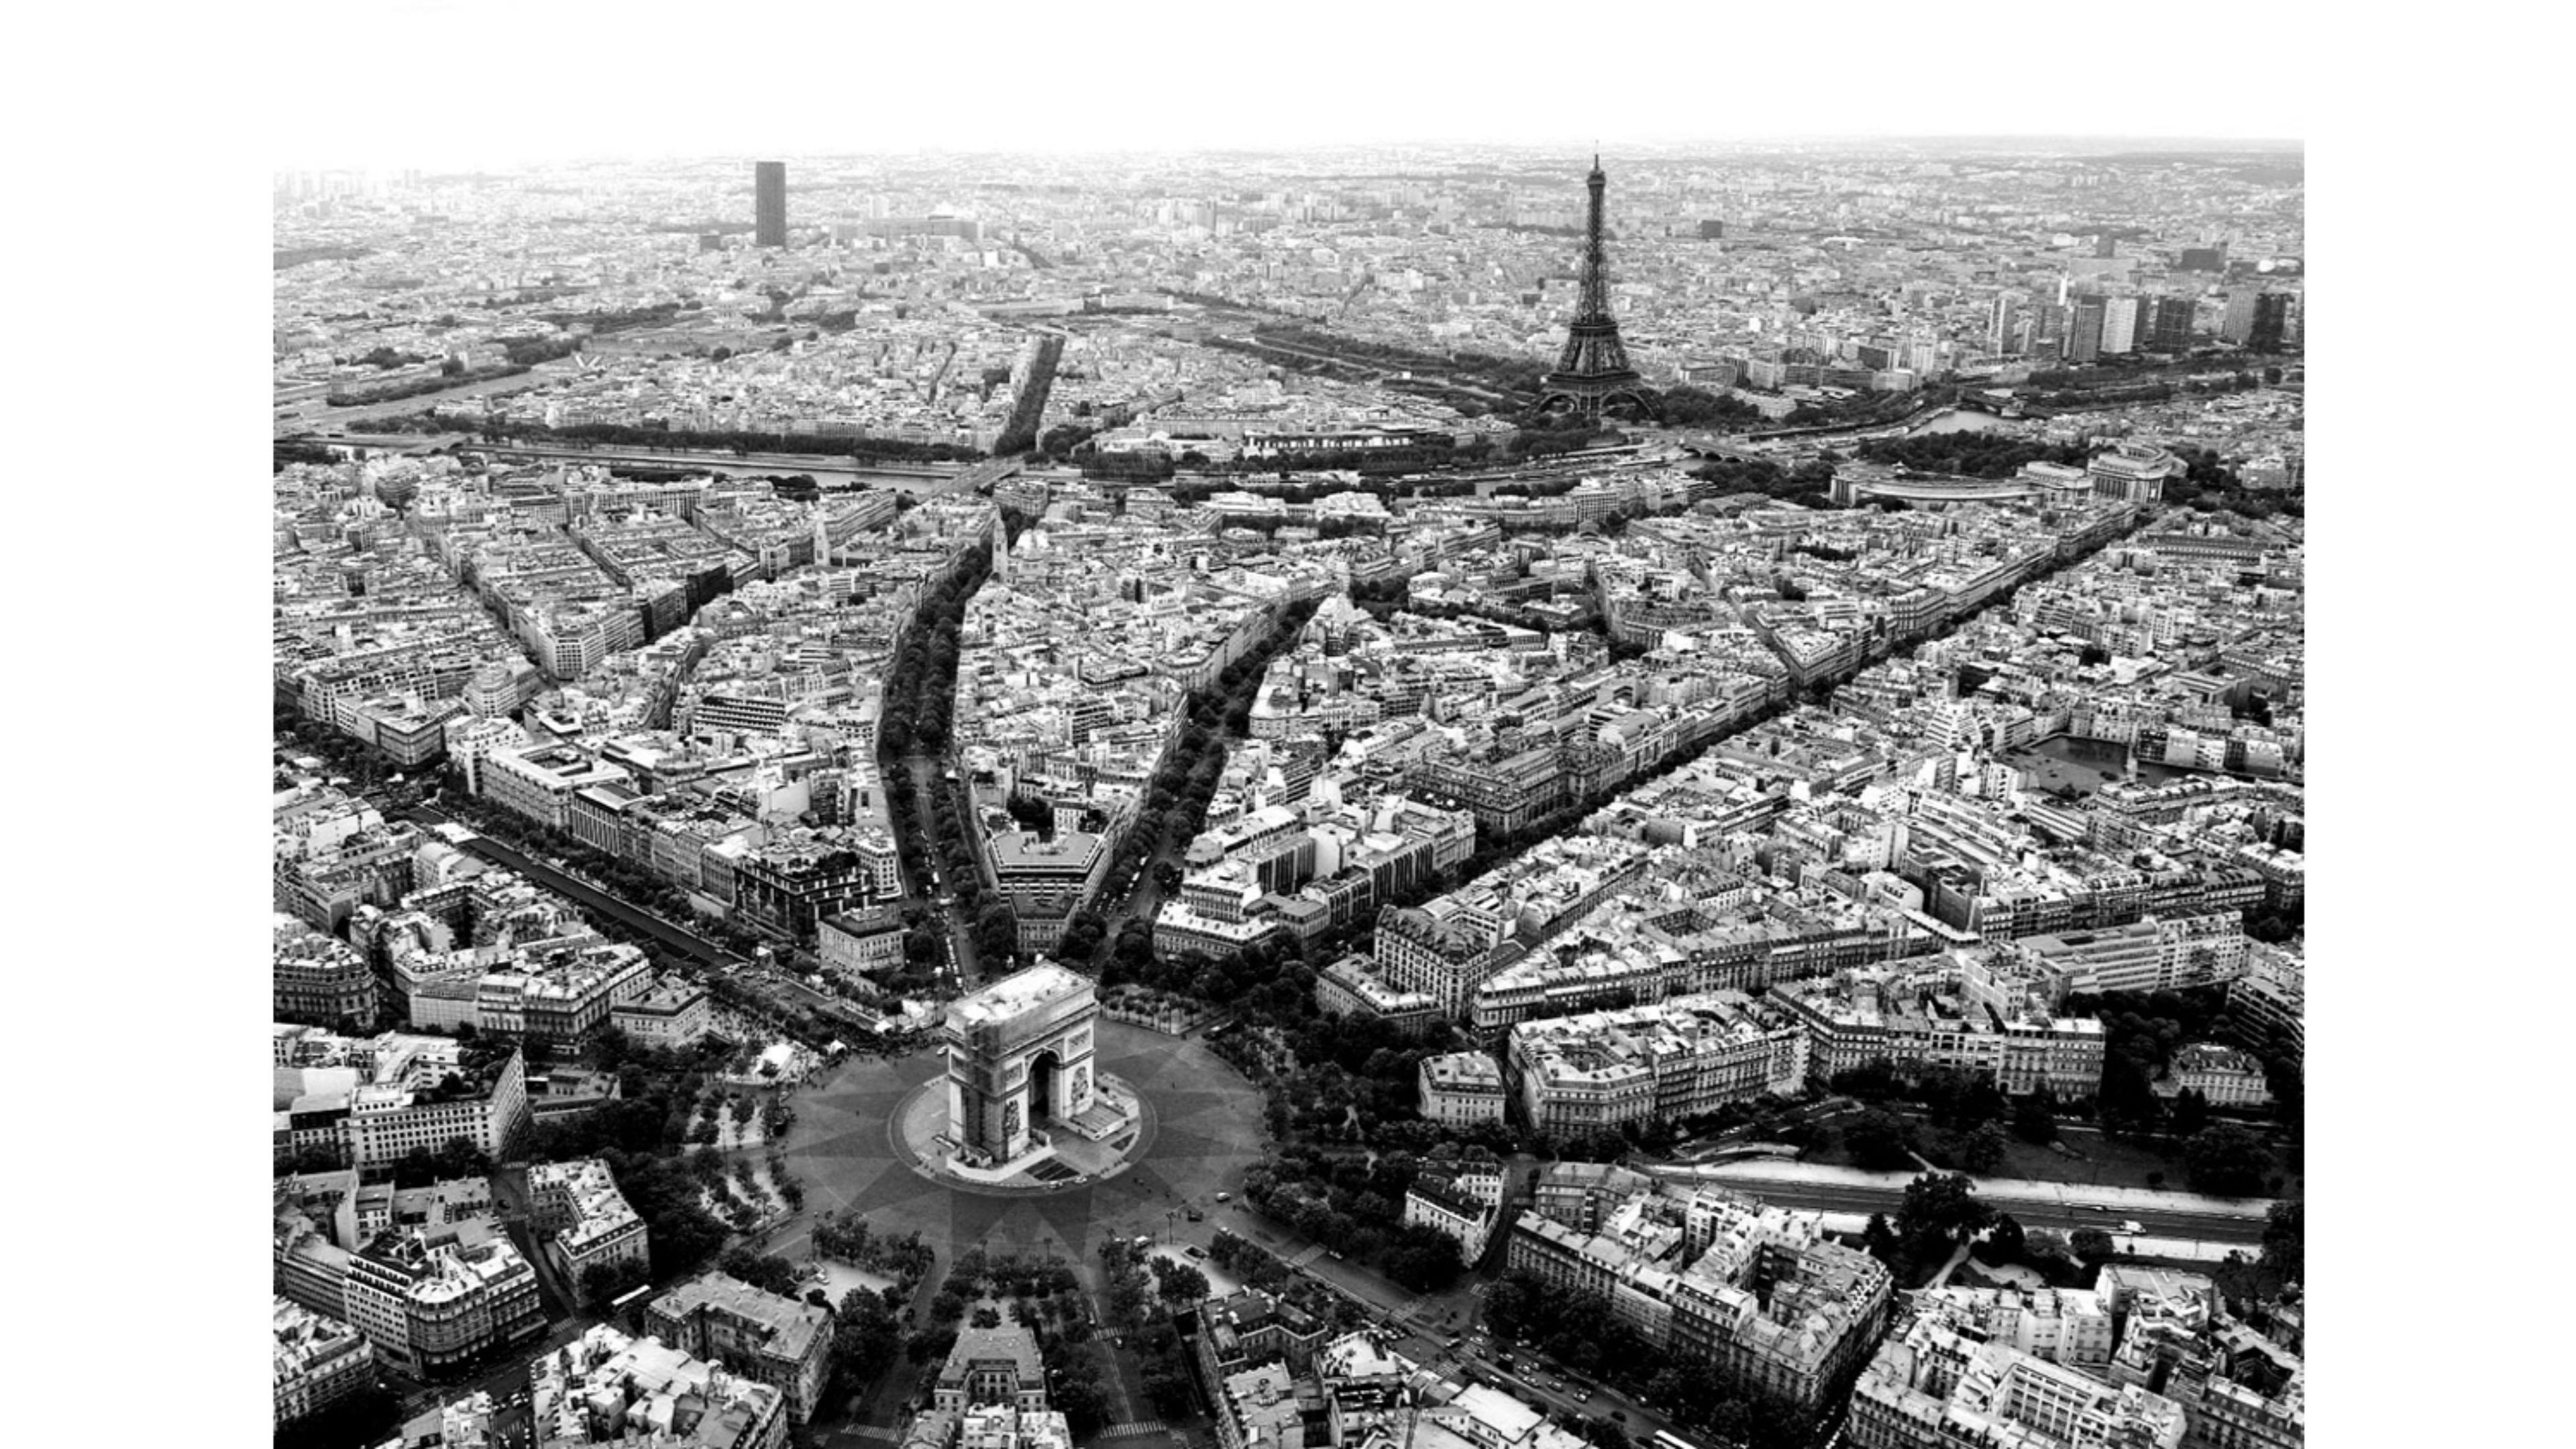 Free Download Paris Black And White 729x1097 For Your Desktop